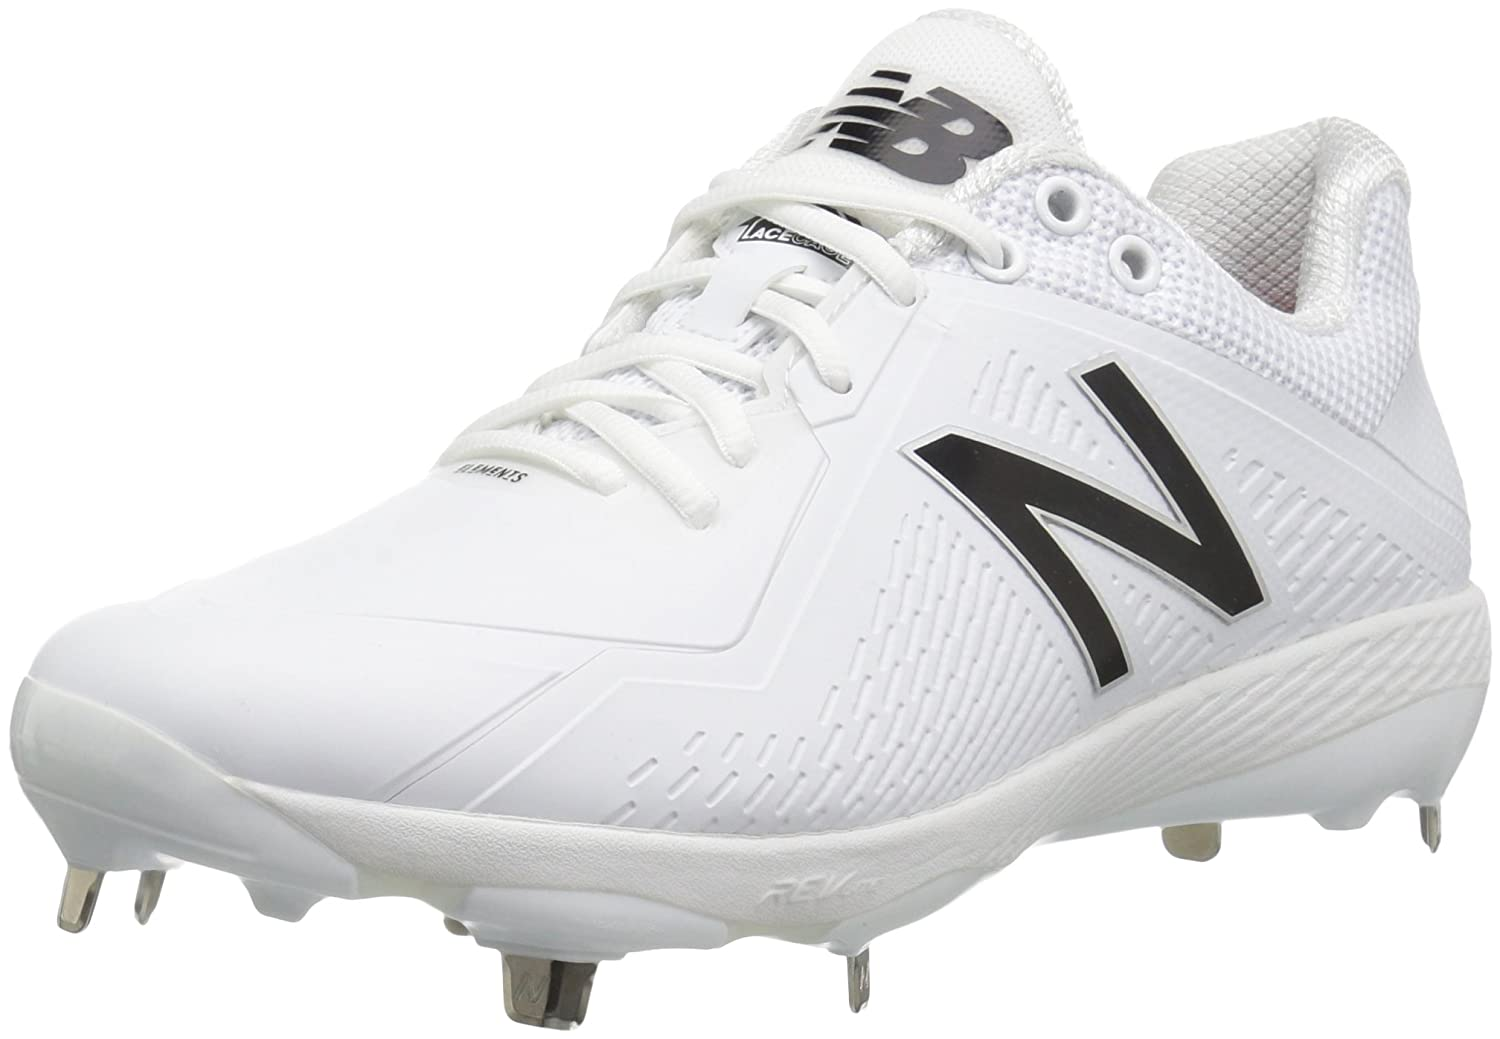 Mens 4040 V4 Metal Synthetic Baseball Cleats